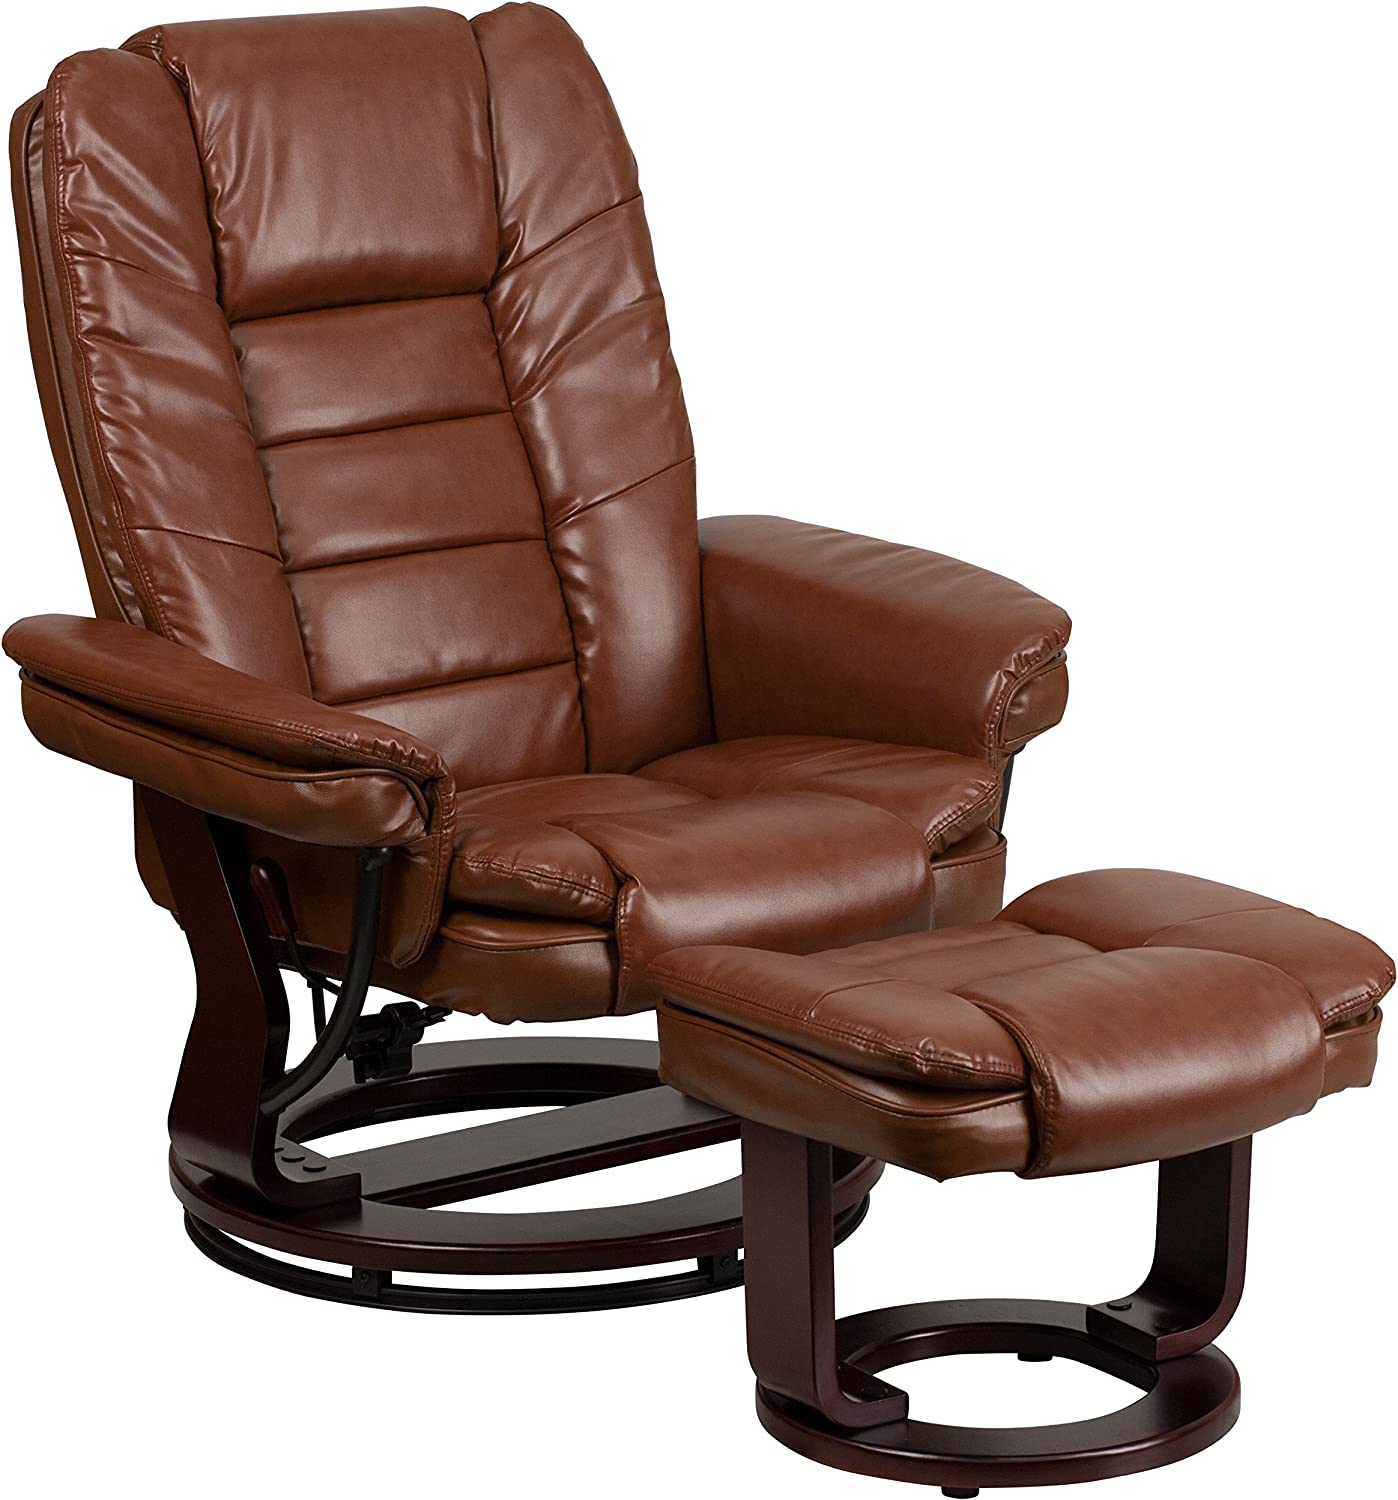 Flash Furniture Contemporary Black Leather Recliner /& Ottoman W//Wood Base NEW